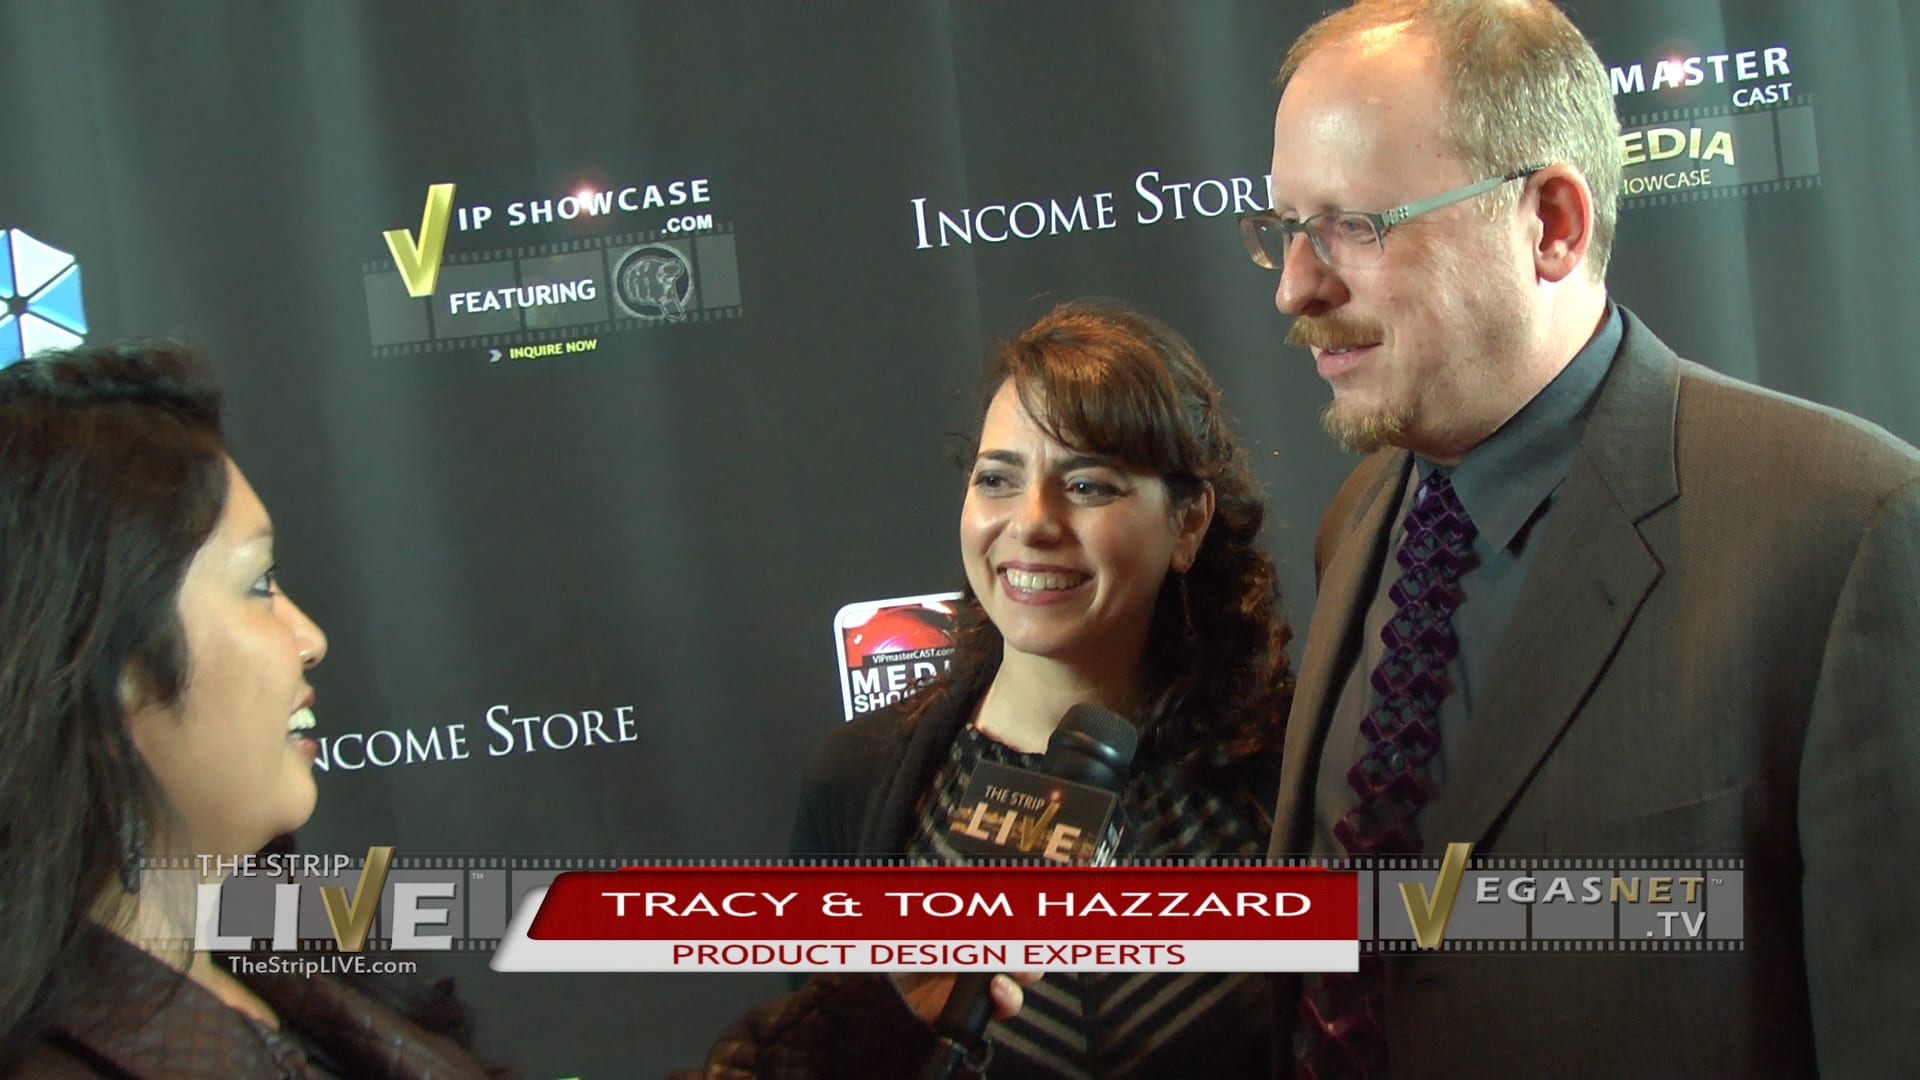 Insights on the 3D Printing Revolution from Tom & Tracy Hazzard | Media Showcase with Maria Ngo